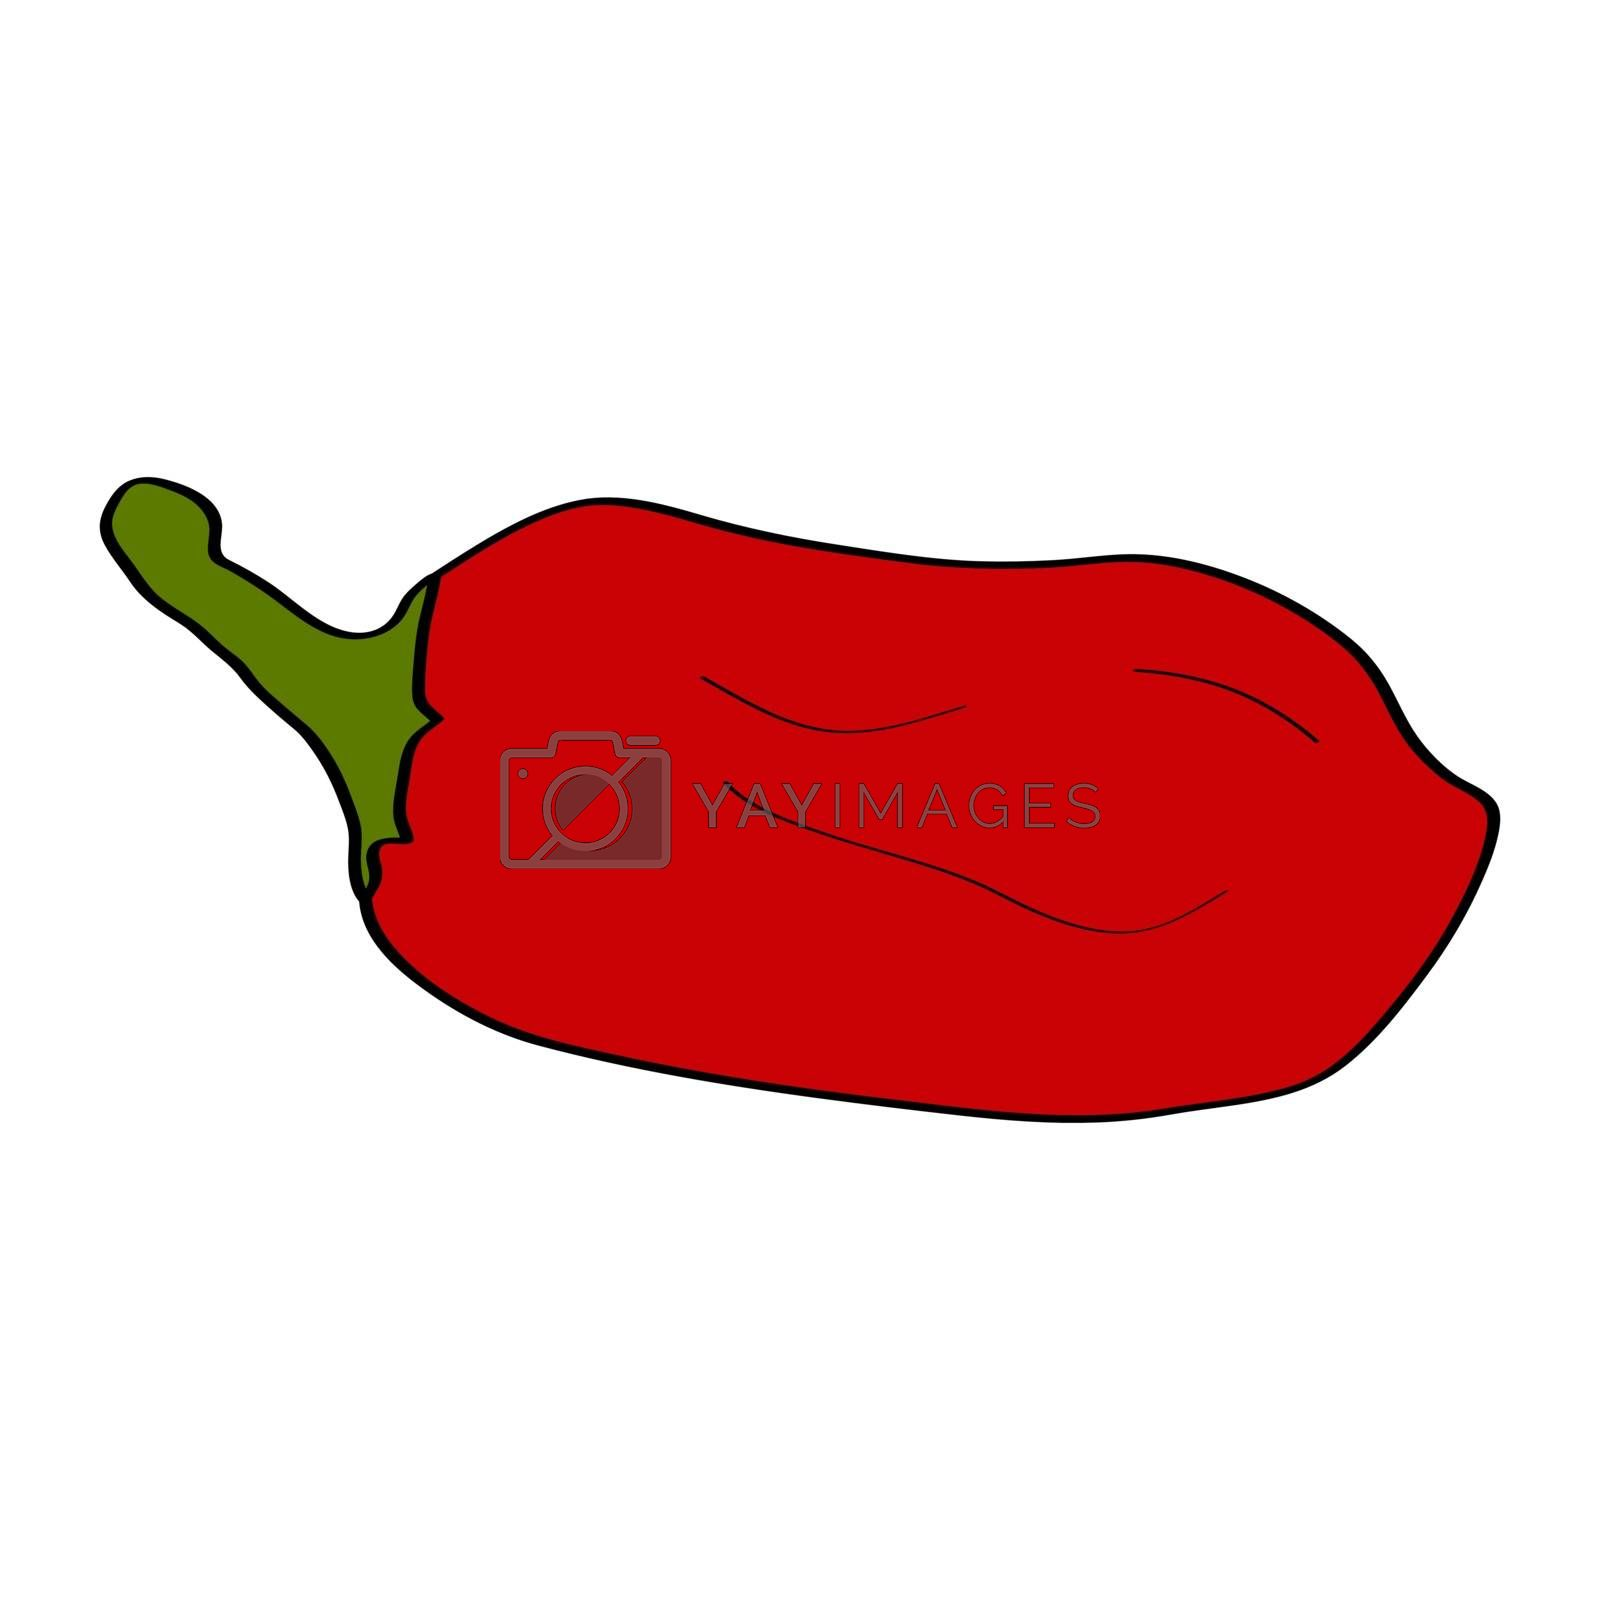 Pepper. Hand drawn doodle icon. Colorful vector illustration isolated on white background. Decoration for greeting cards, posters, patches, prints for clothes, emblems.